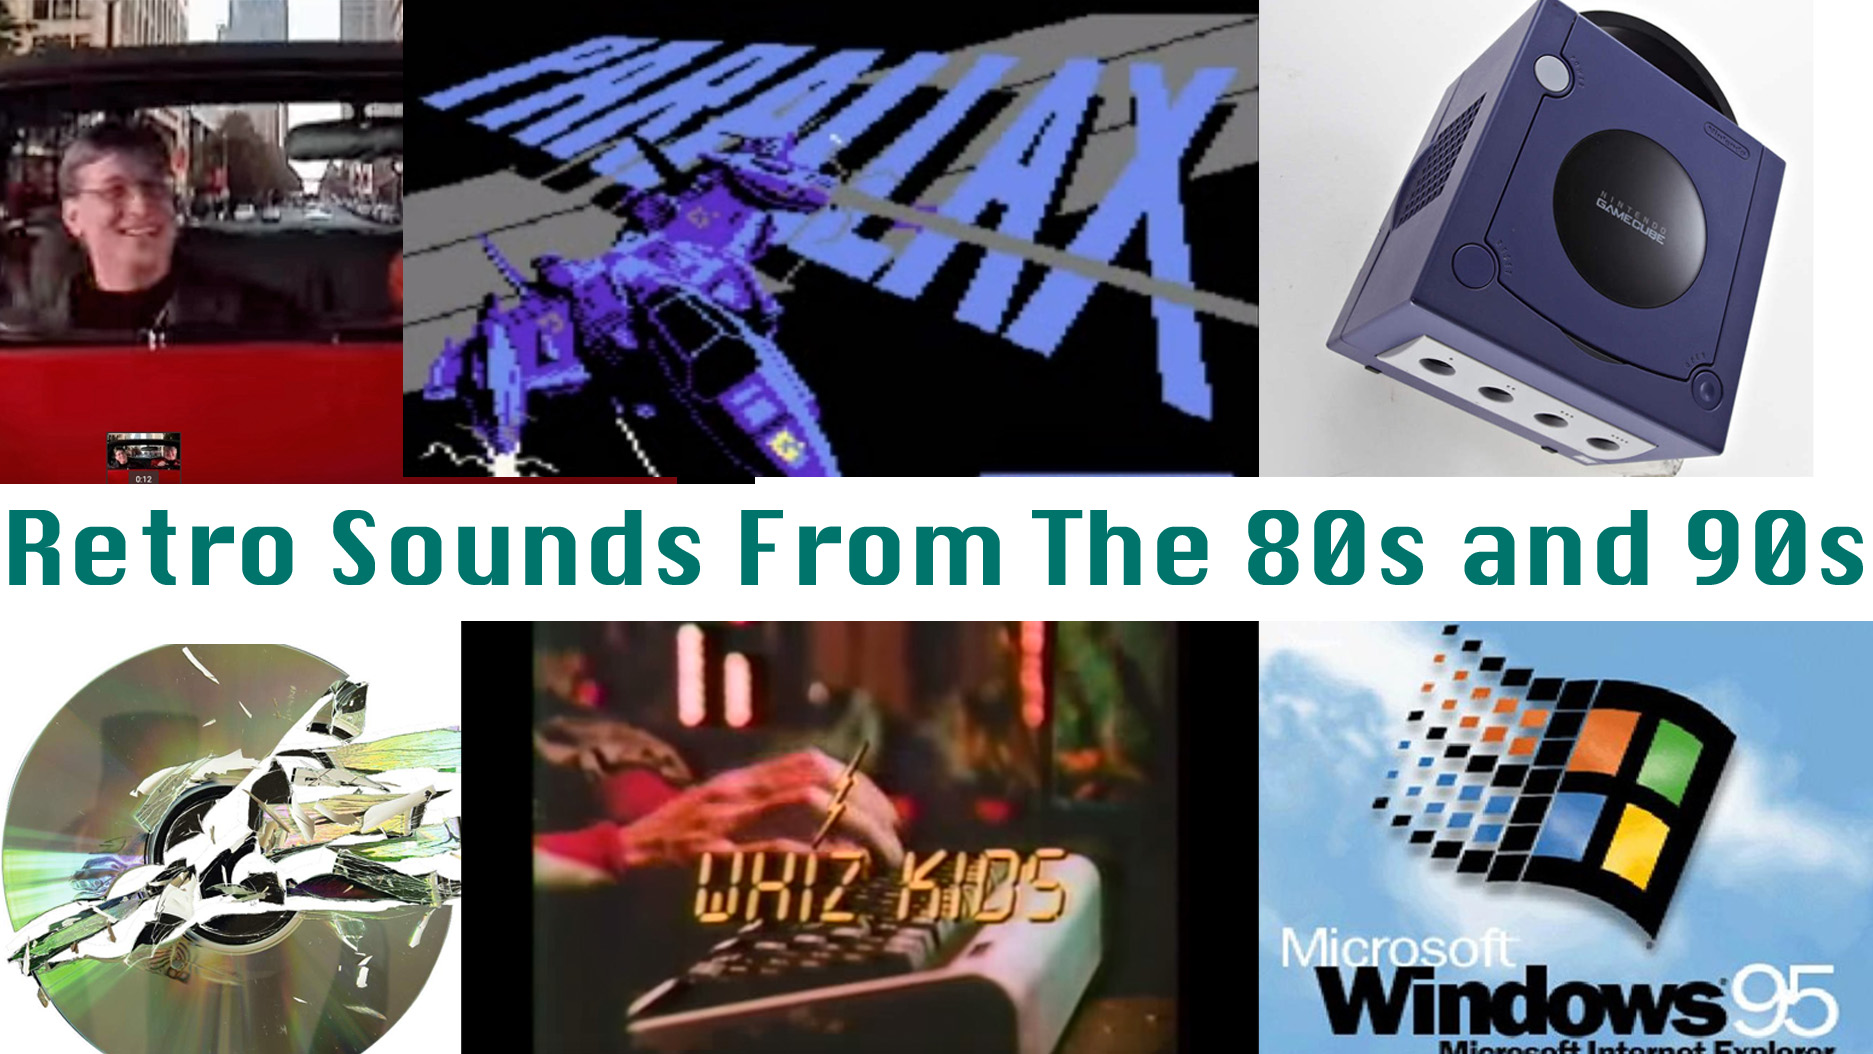 Listen to the retro sounds that defined the 80s and 90s | TechRadar